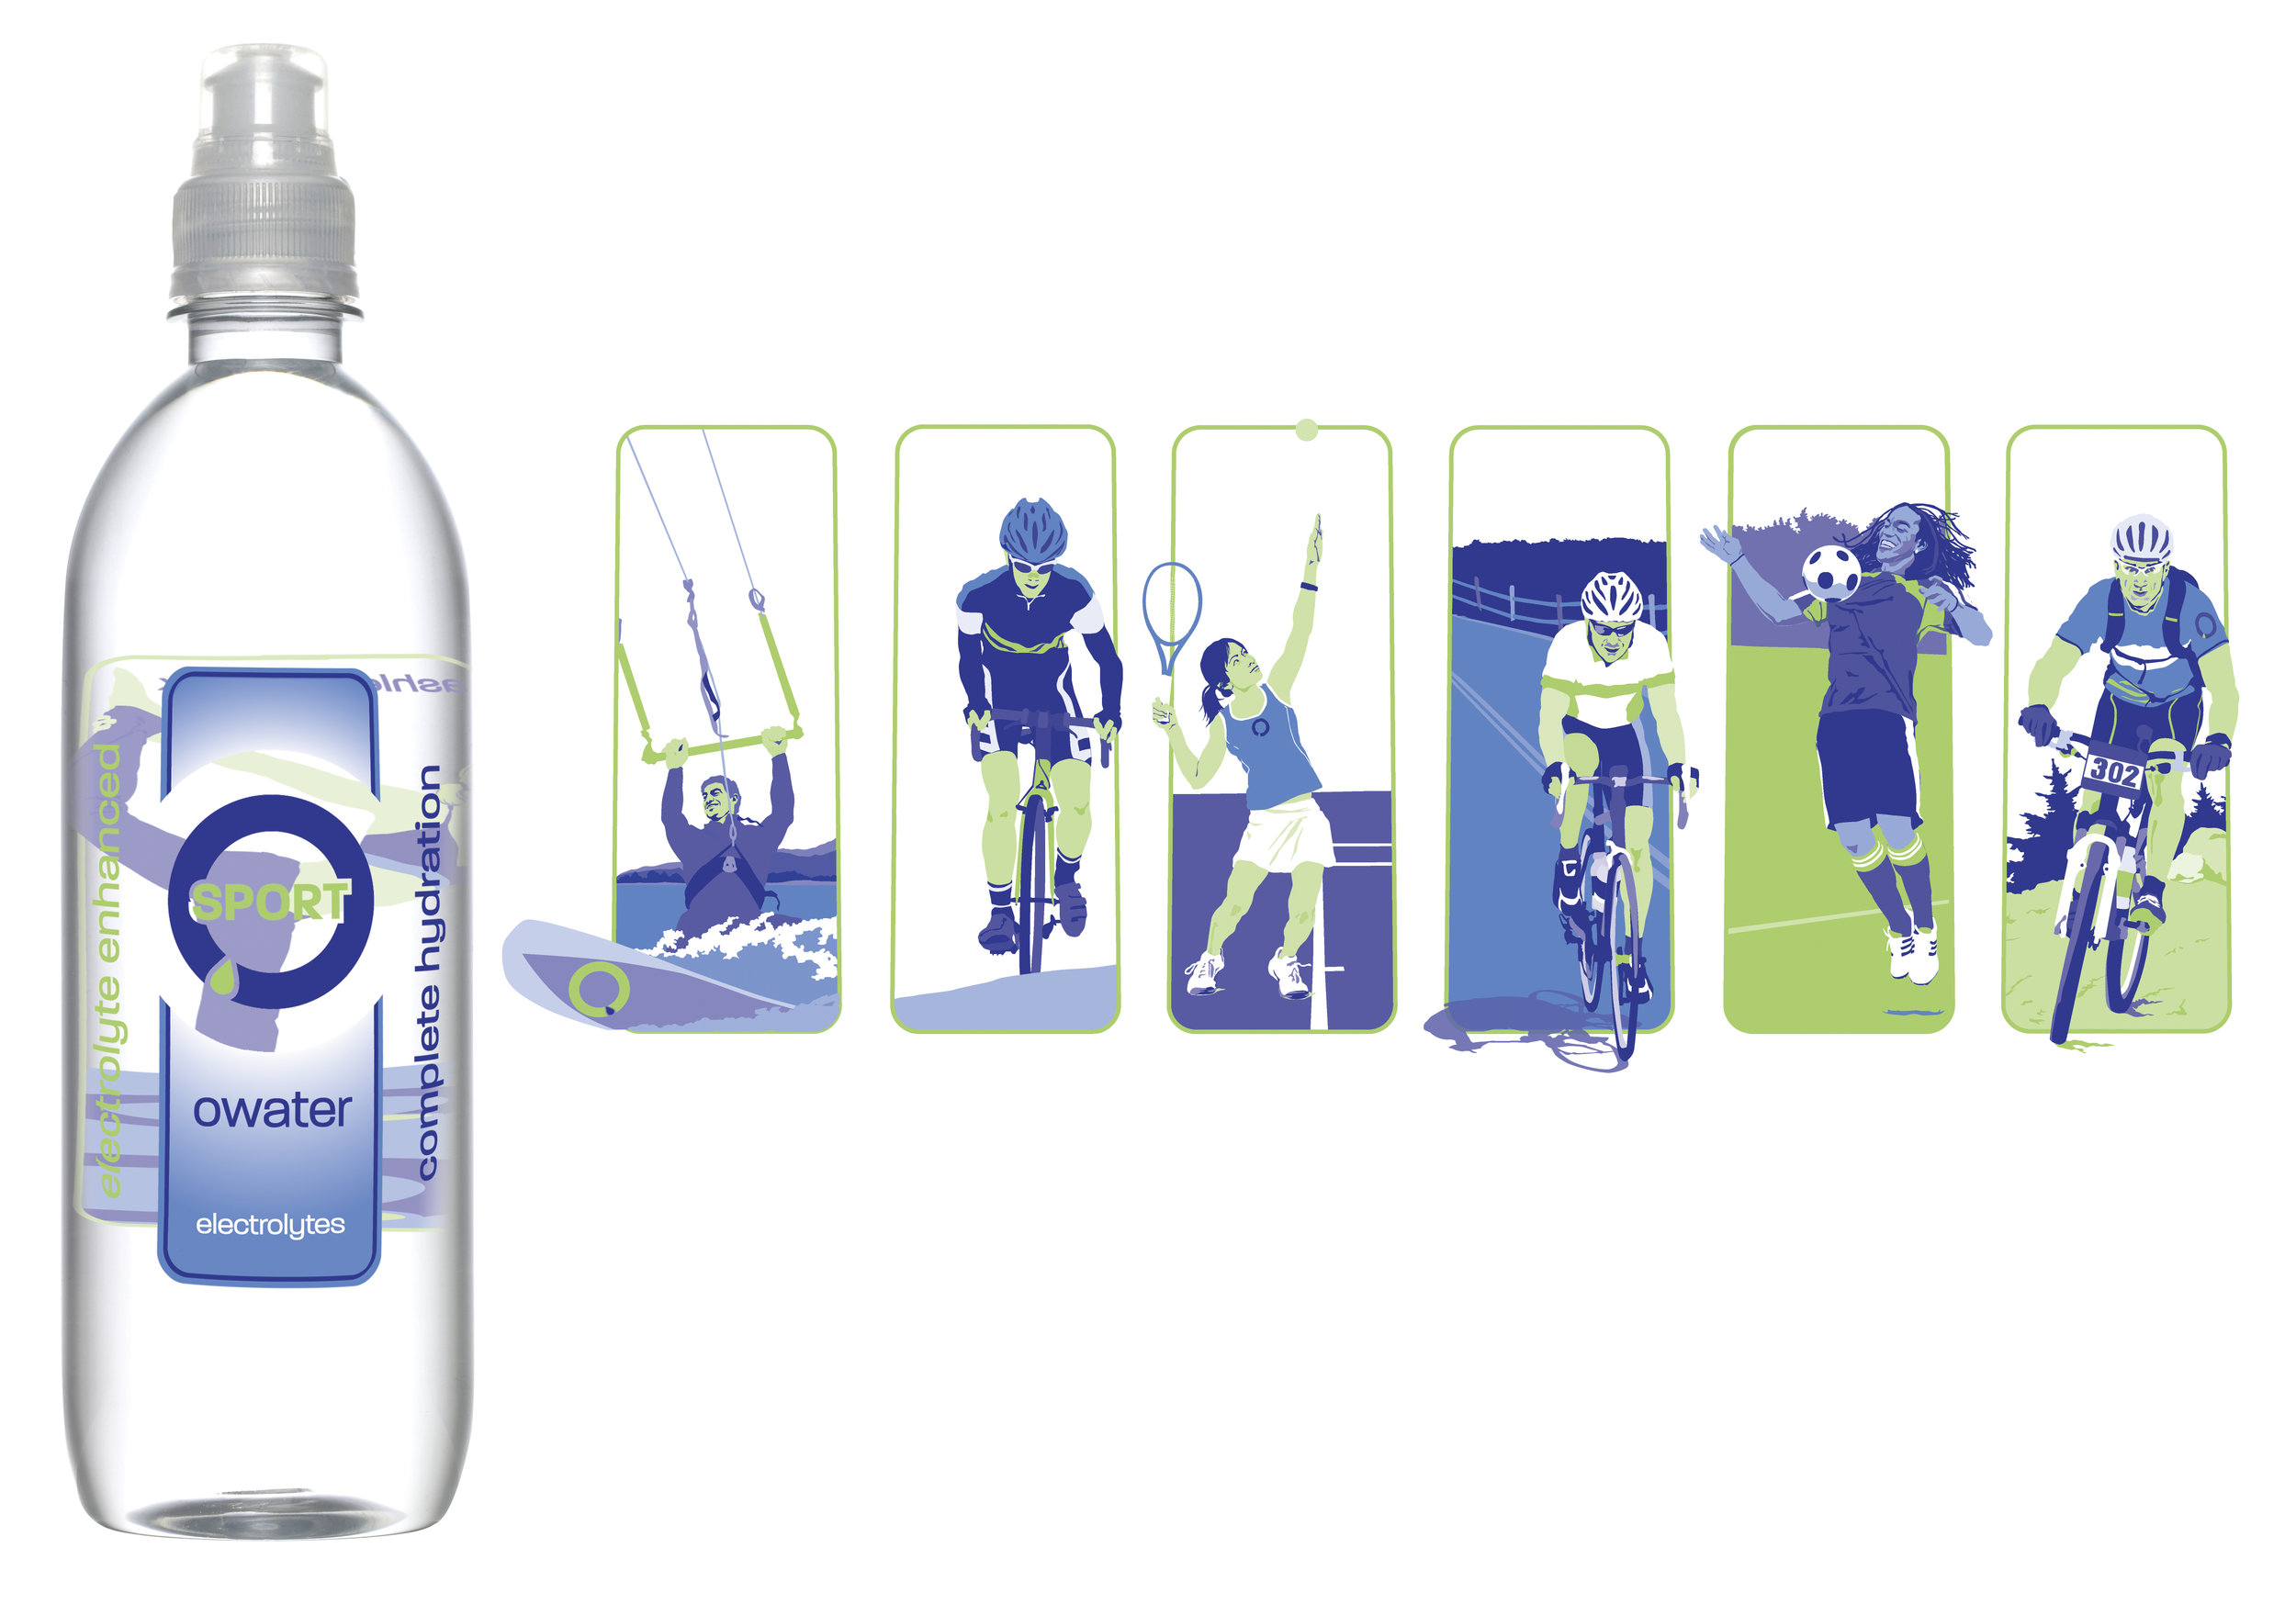 Owater Sport packaging included illustrations of everyday athletes.